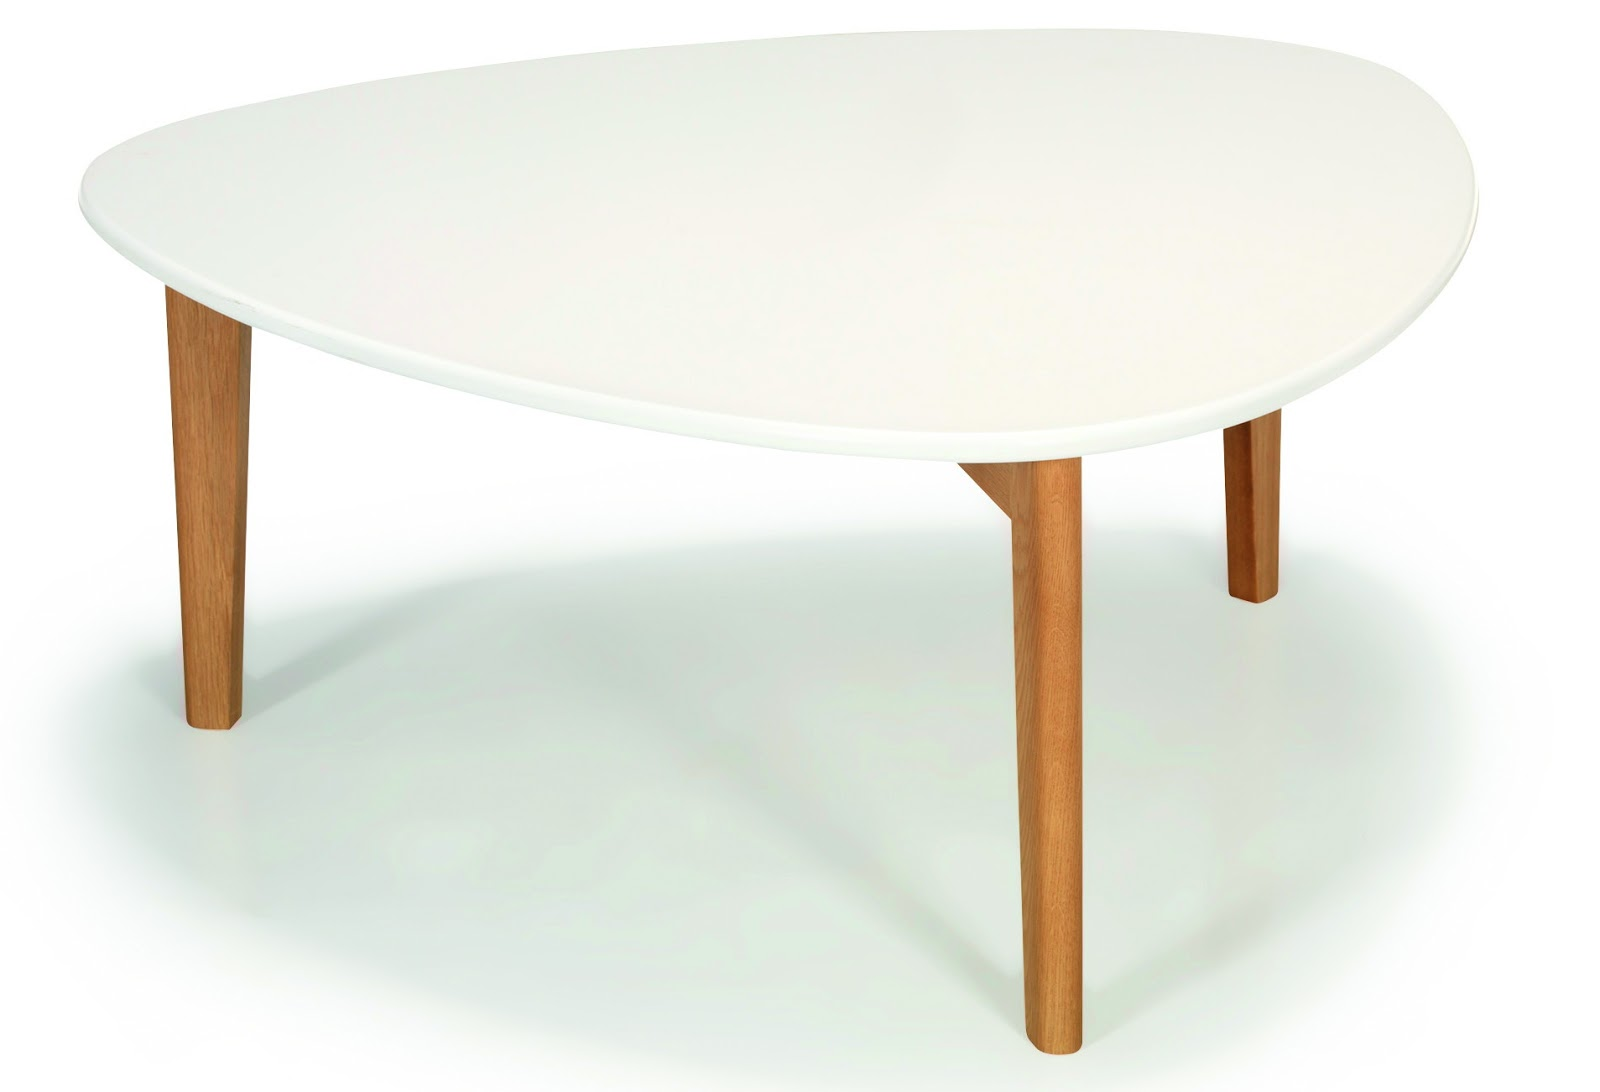 Alinea nouvelle collection valy 39 s blog - Table basse moderne divine collection ...